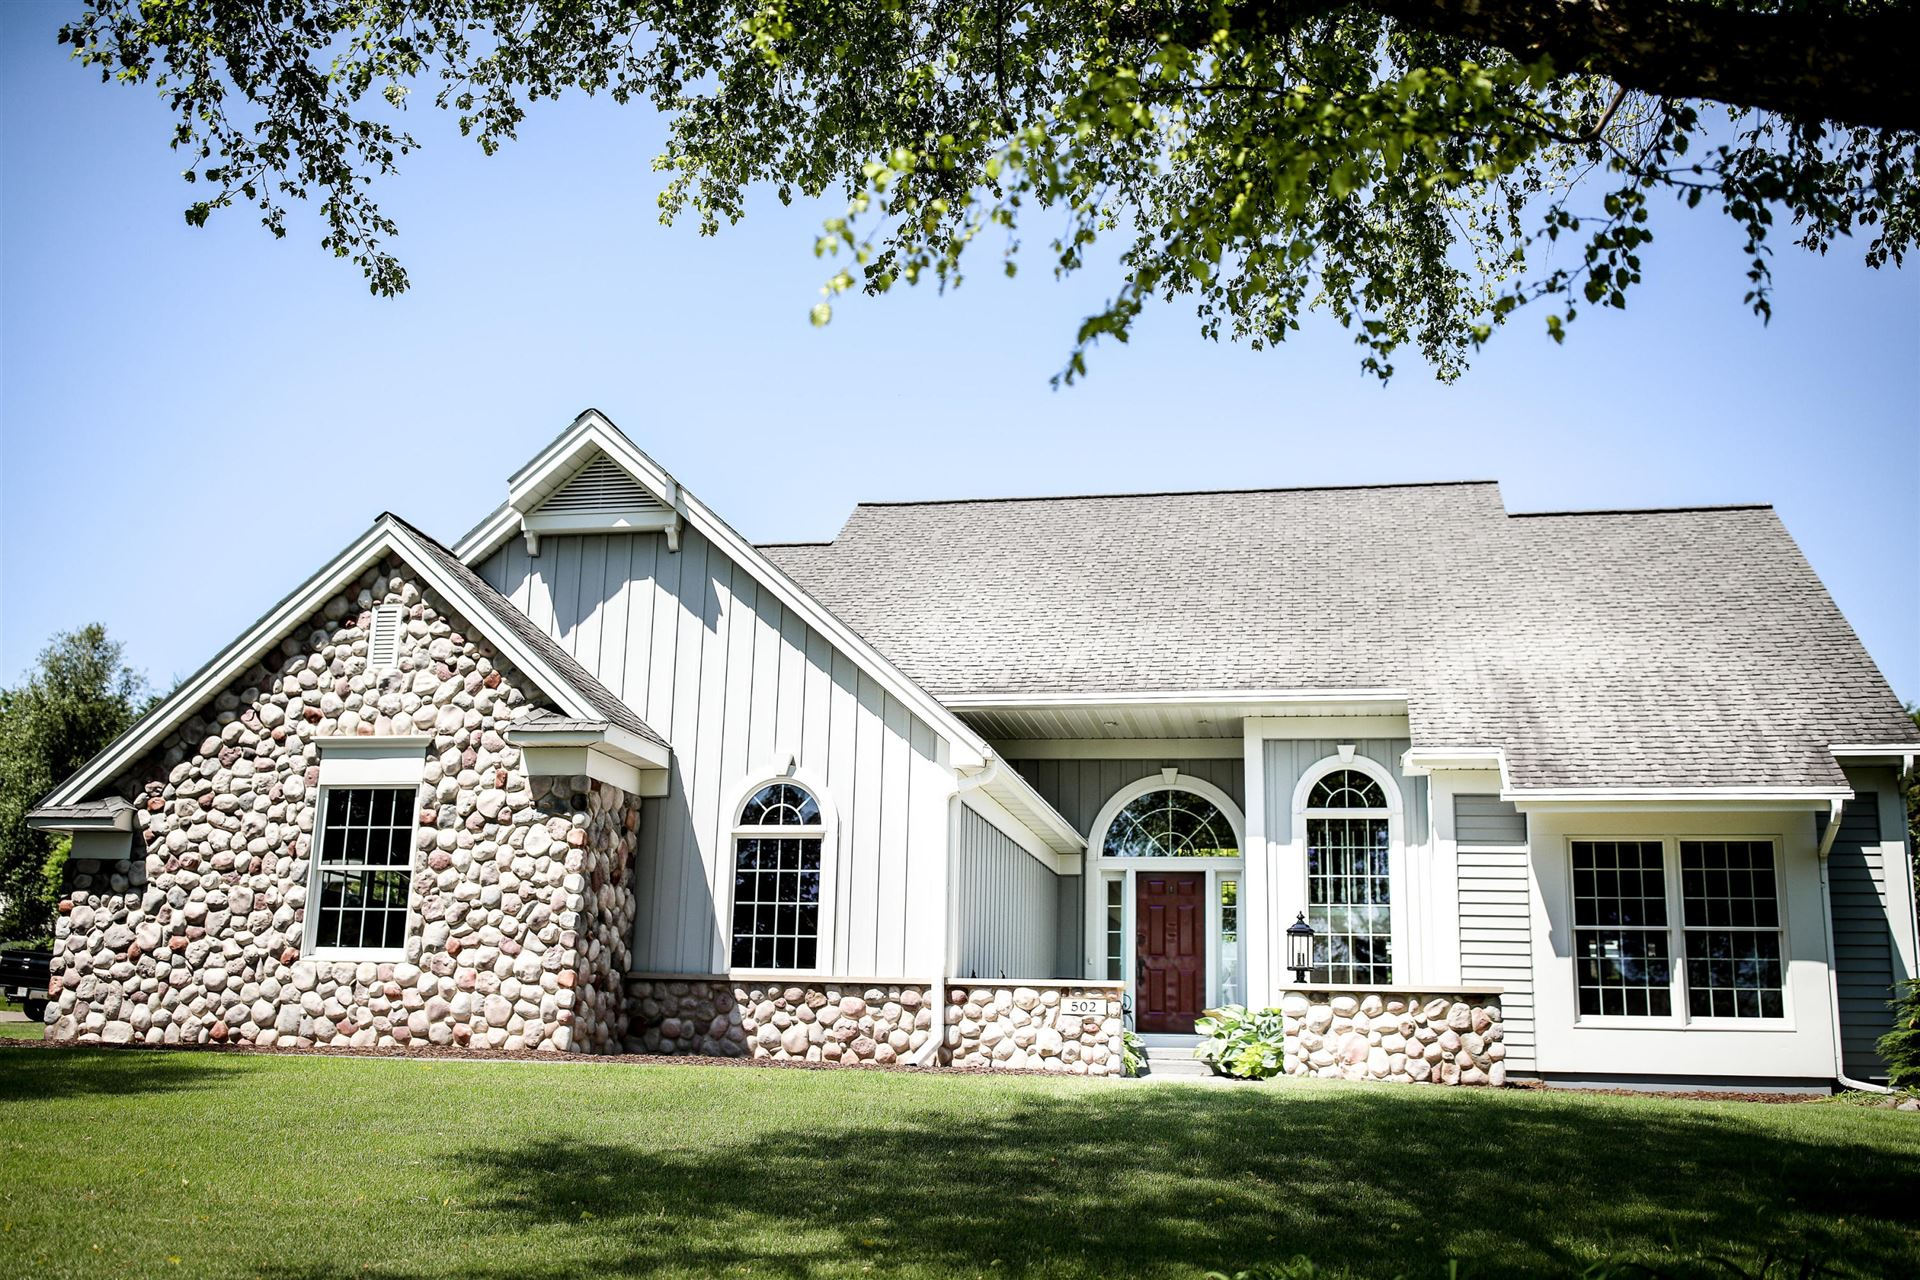 502 Highland Meadows Dr, Sparta, WI 54656 - MLS#: 1694185